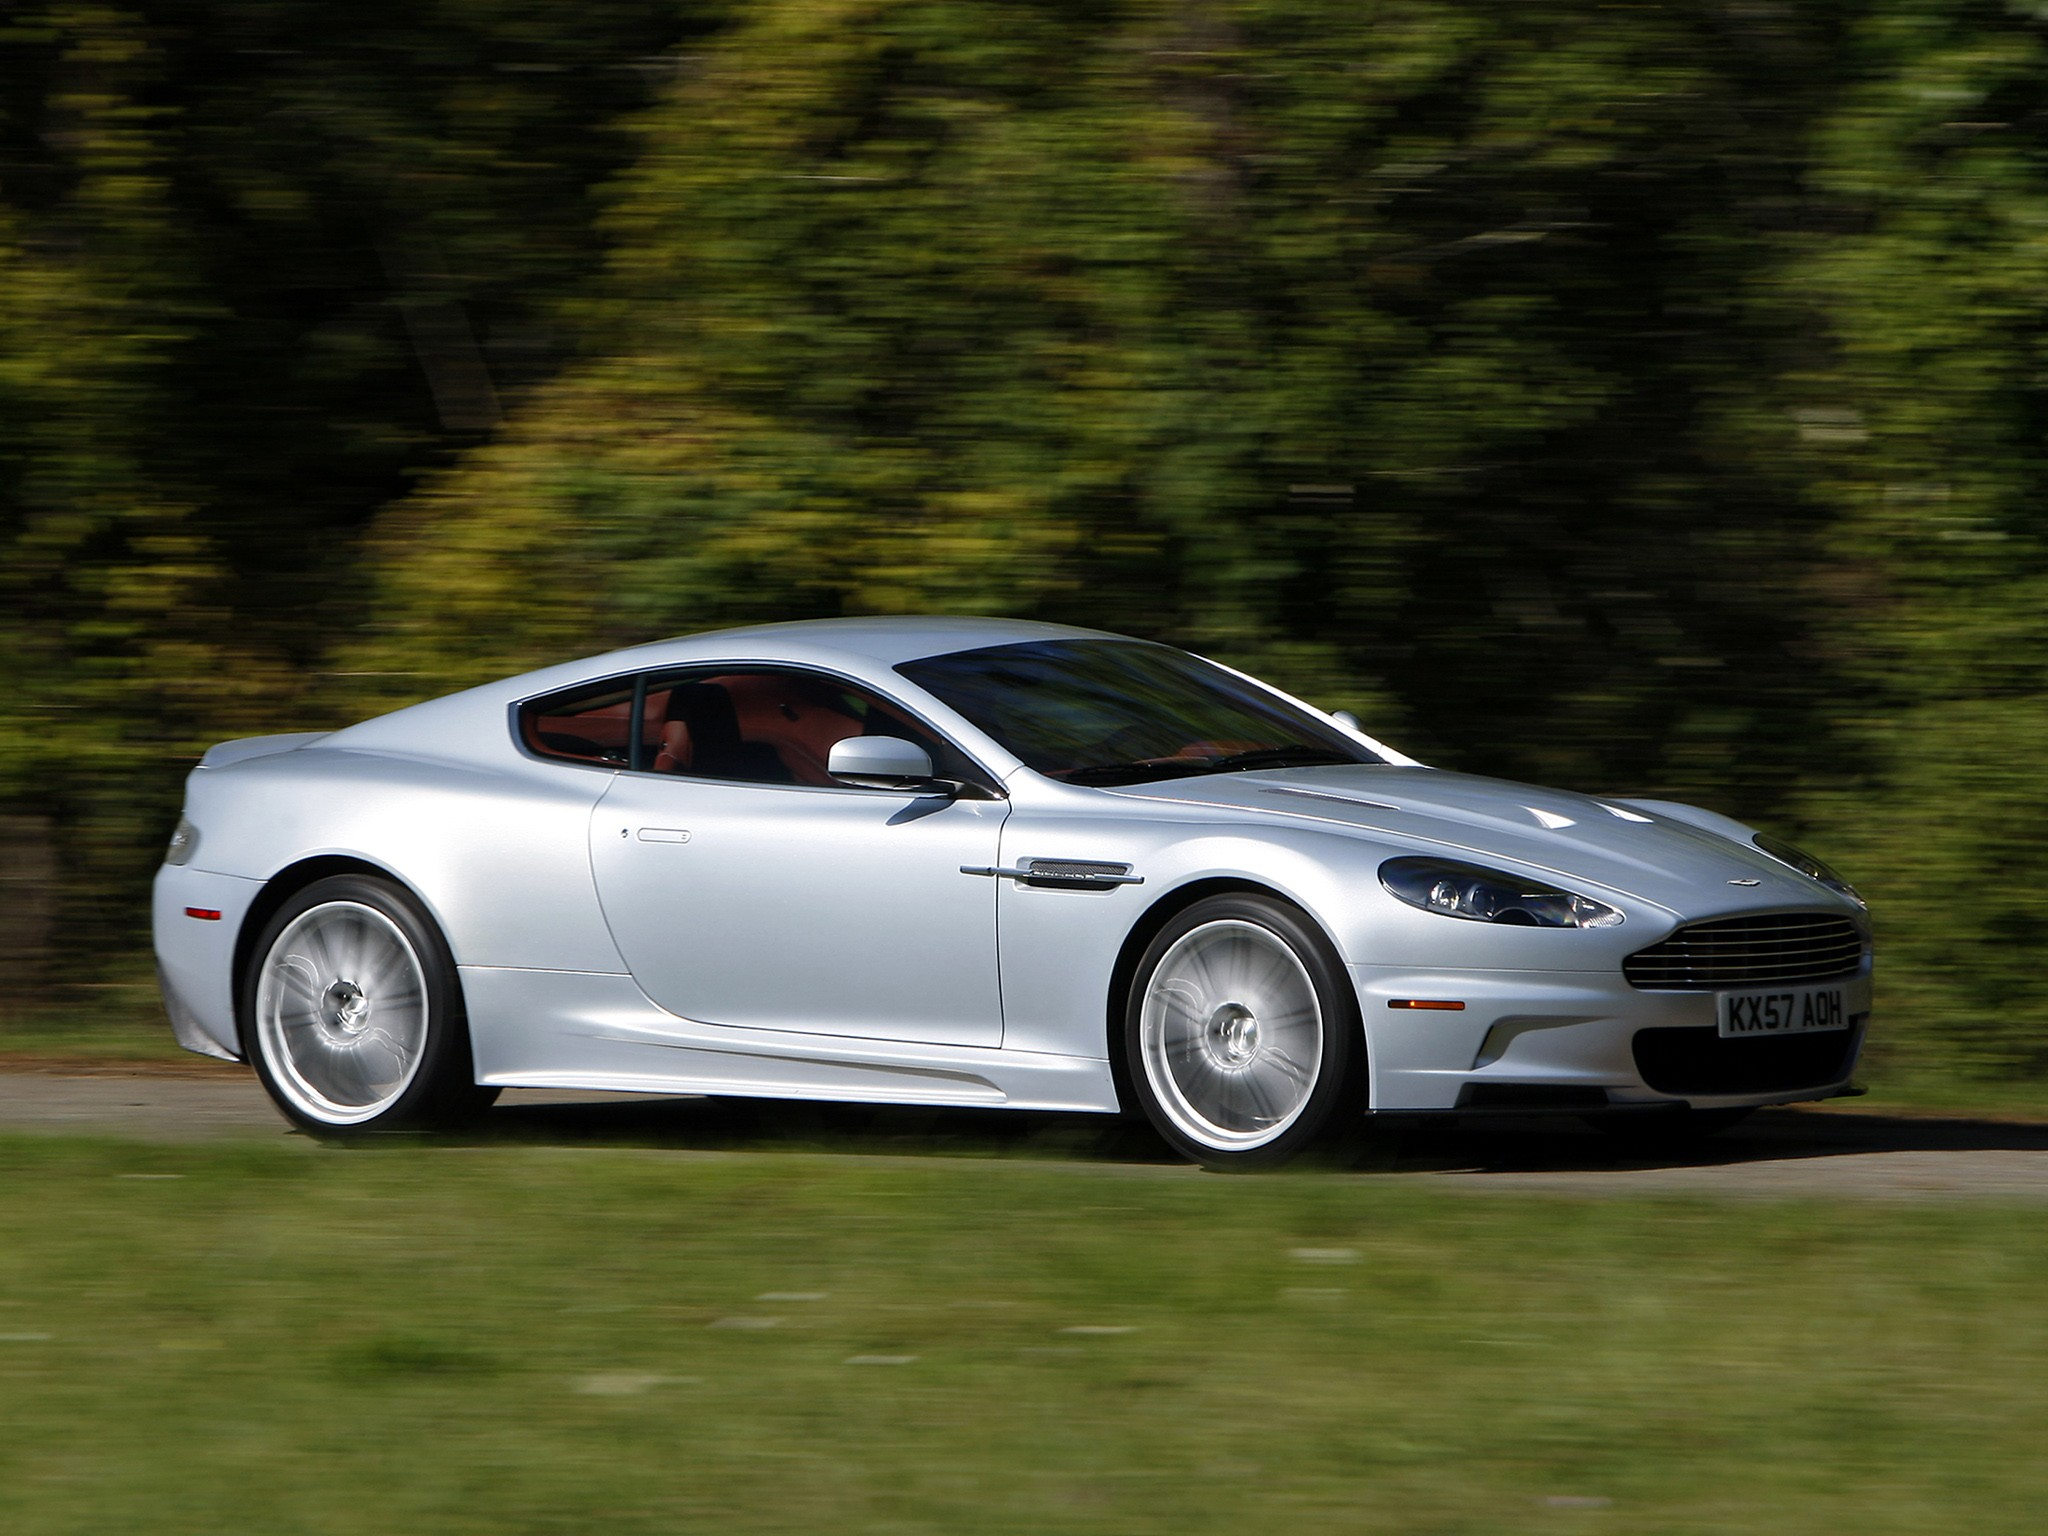 aston martin dbs specs 2008 2009 2010 2011 2012 autoevolution. Black Bedroom Furniture Sets. Home Design Ideas